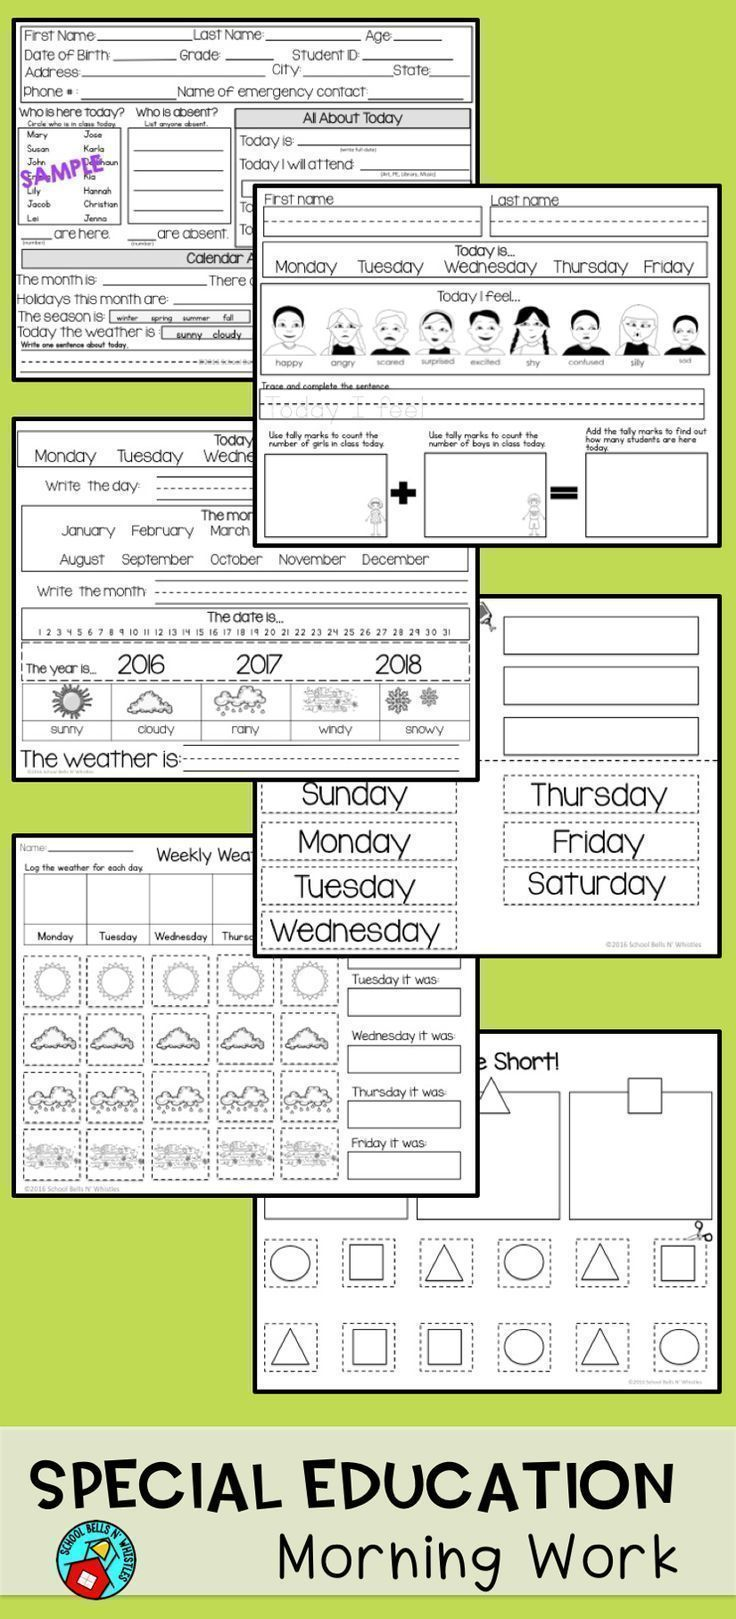 24 pages of morning work for the special education classroom! Practice with personal information, weather, calendar, sorting, and more. Can be customized with your student's names!